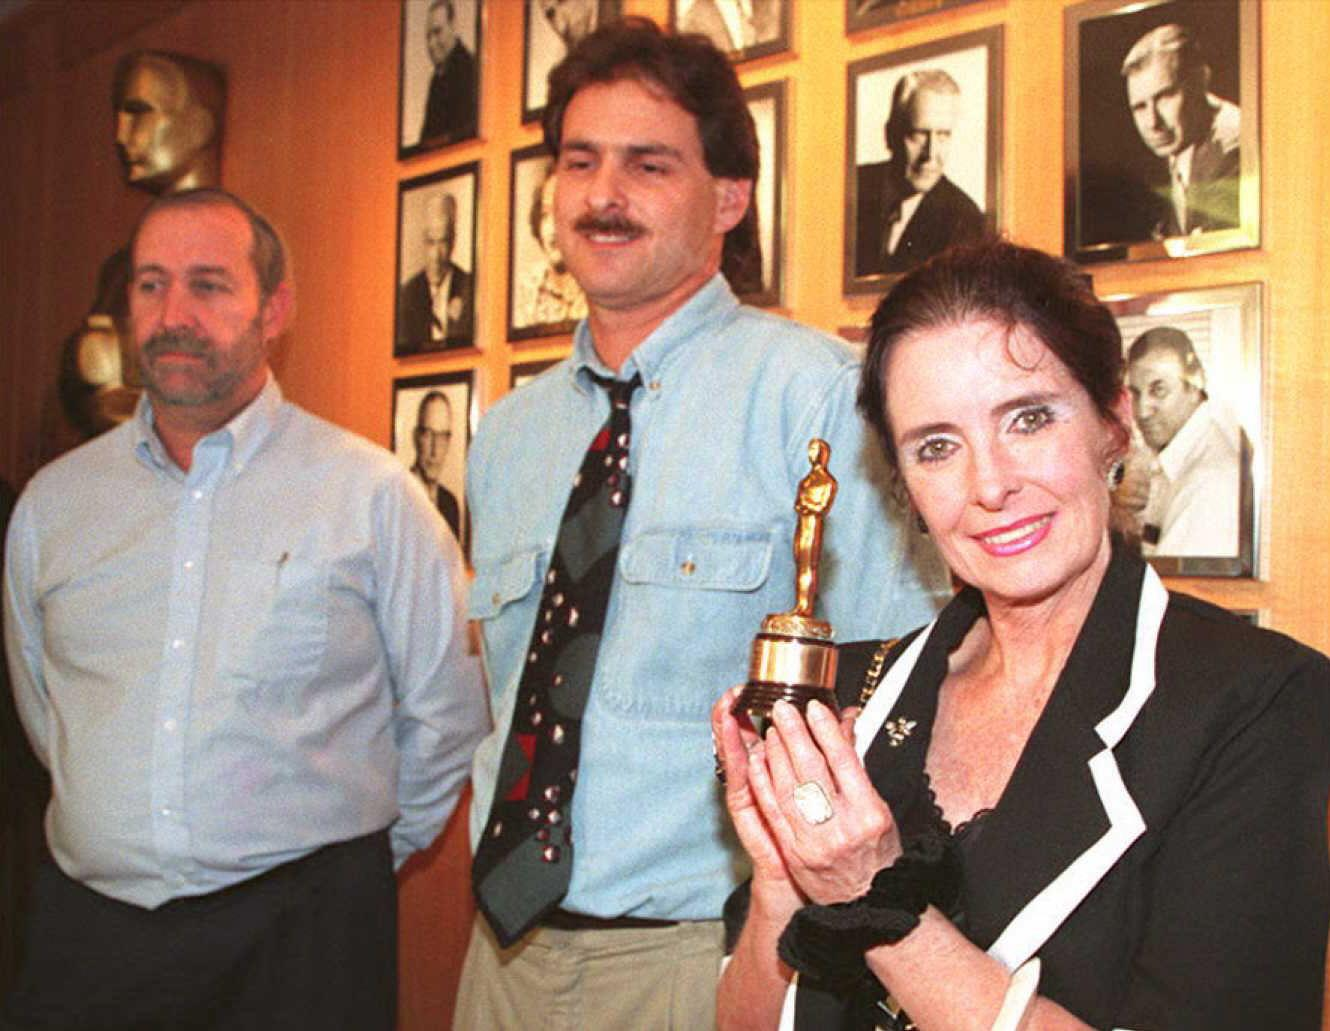 Margaret O'Brien thanks Mark Nash, left, and Steve Neimand for returning her Oscar on Feb. 7, 1995. (Photo: Vince Bucci/AFP/Getty Images)